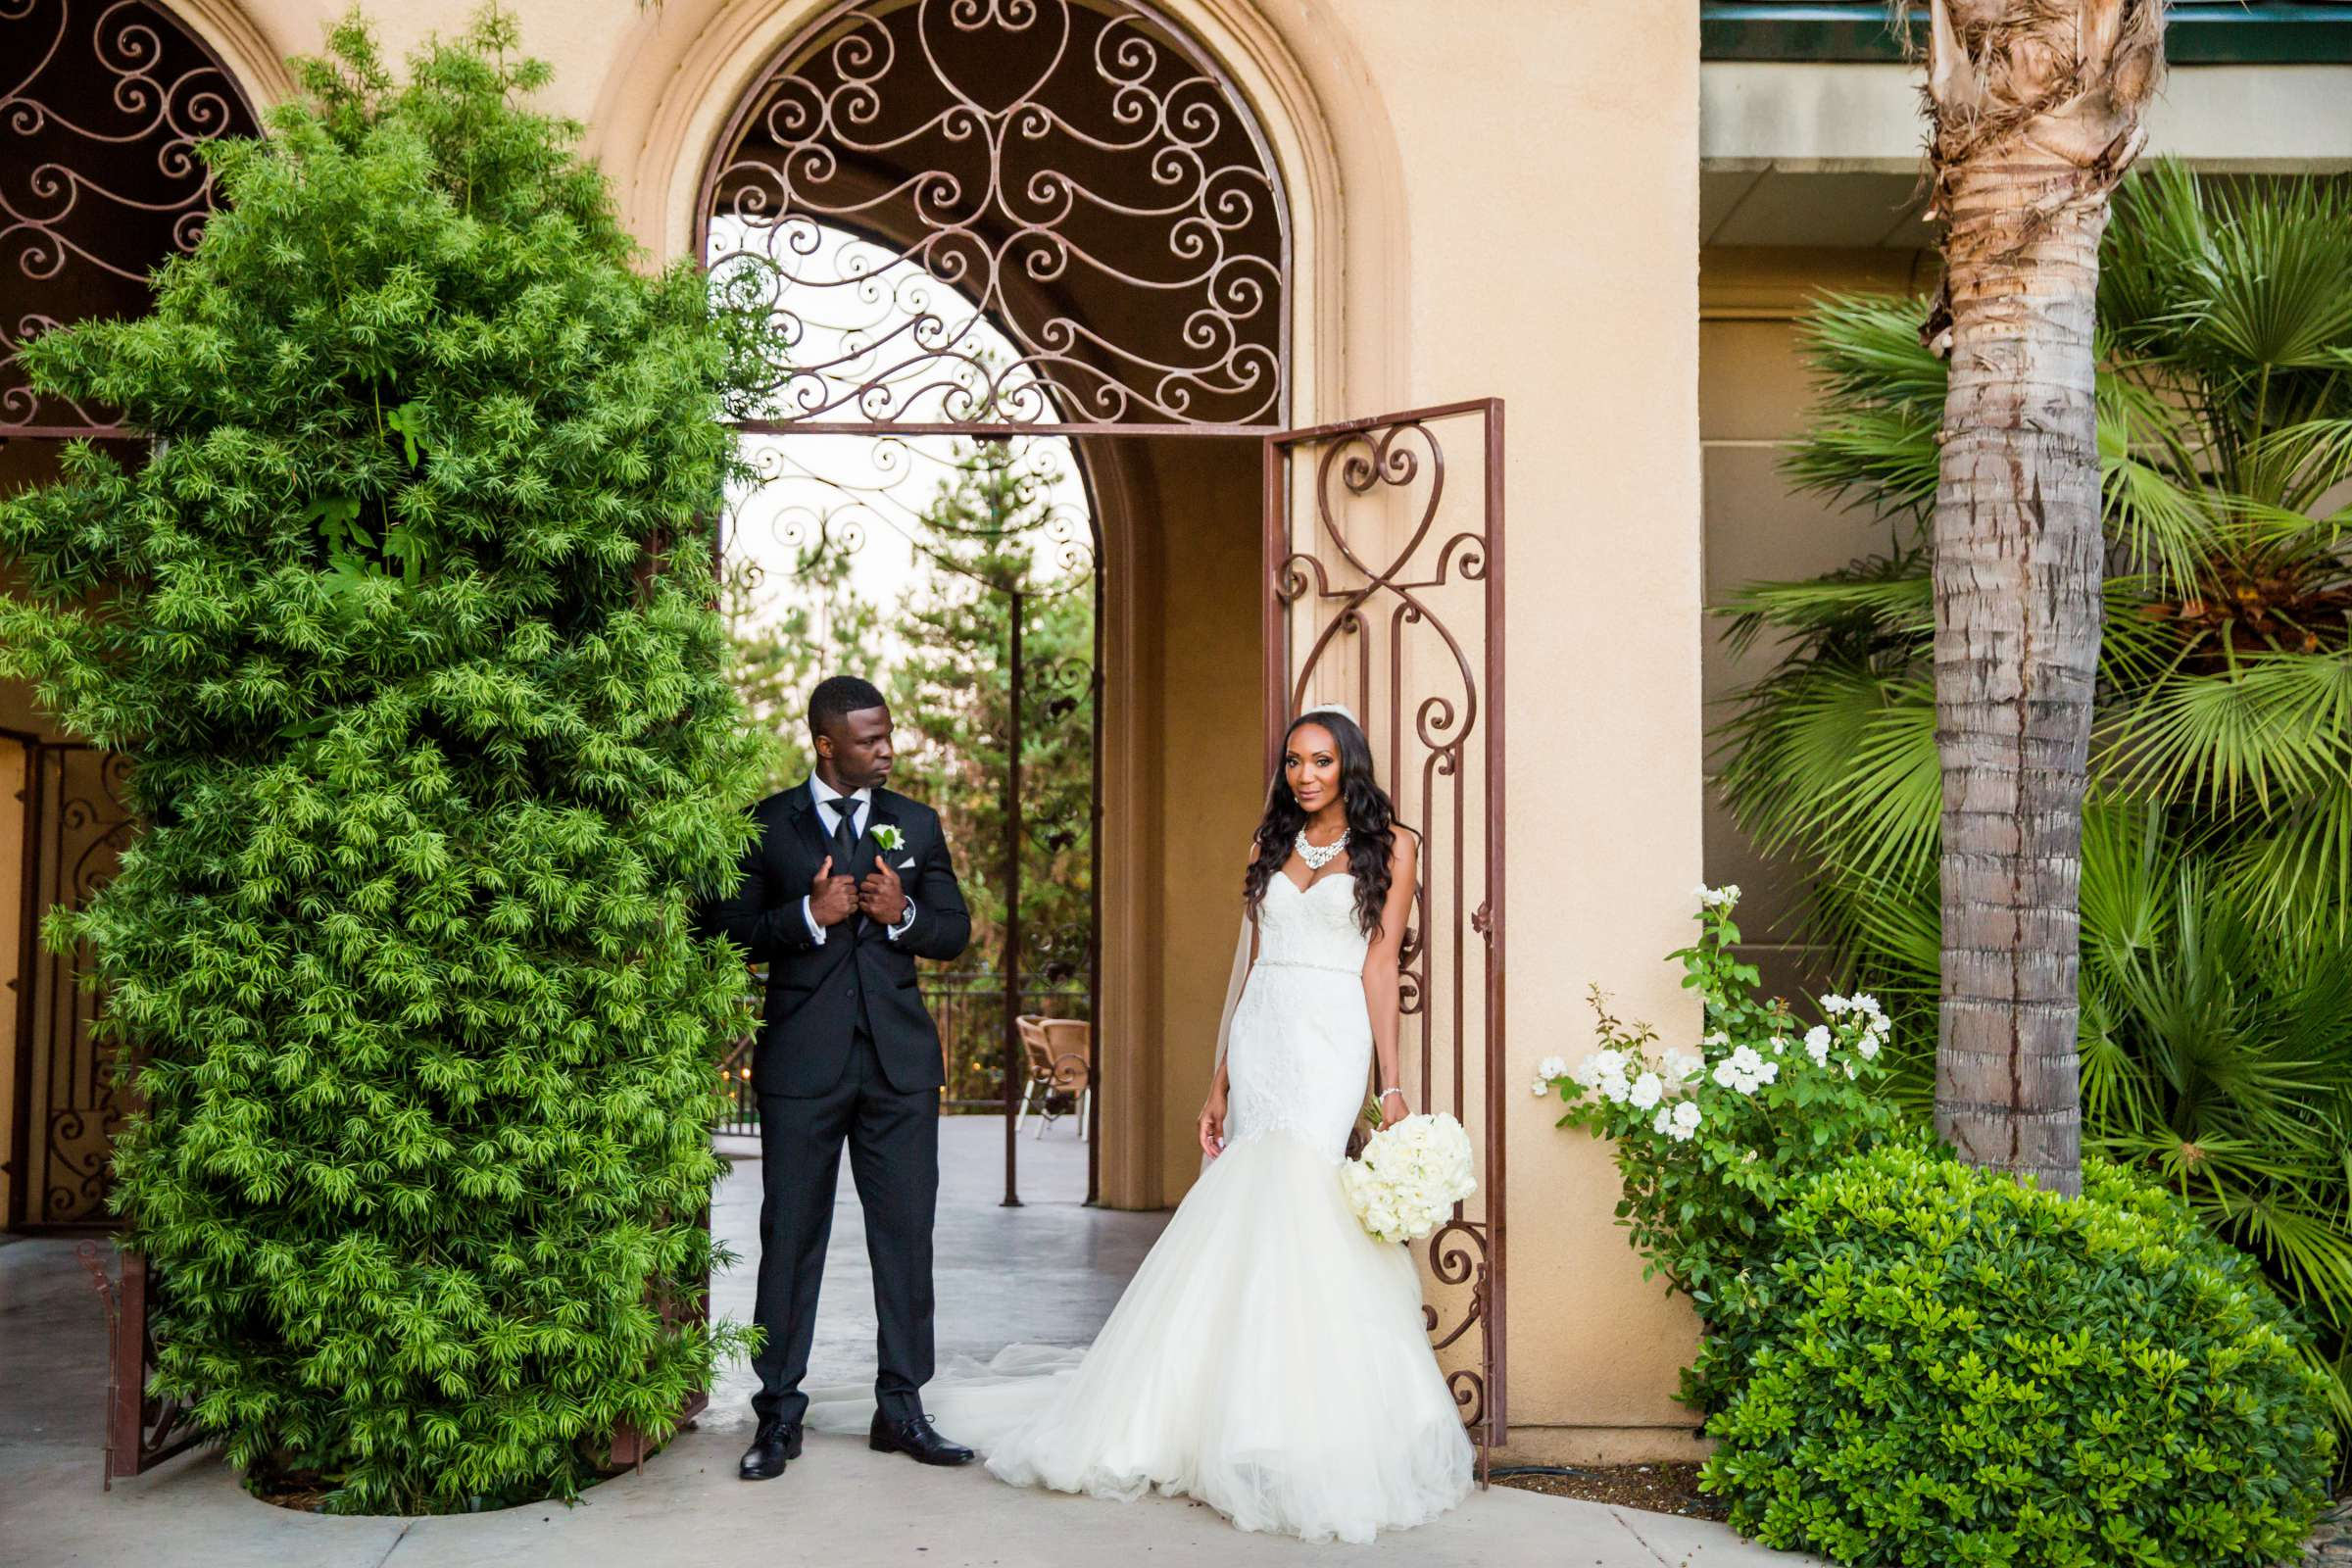 South Coast Winery Wedding, Brittani and Johnny Wedding Photo #3 by True Photography